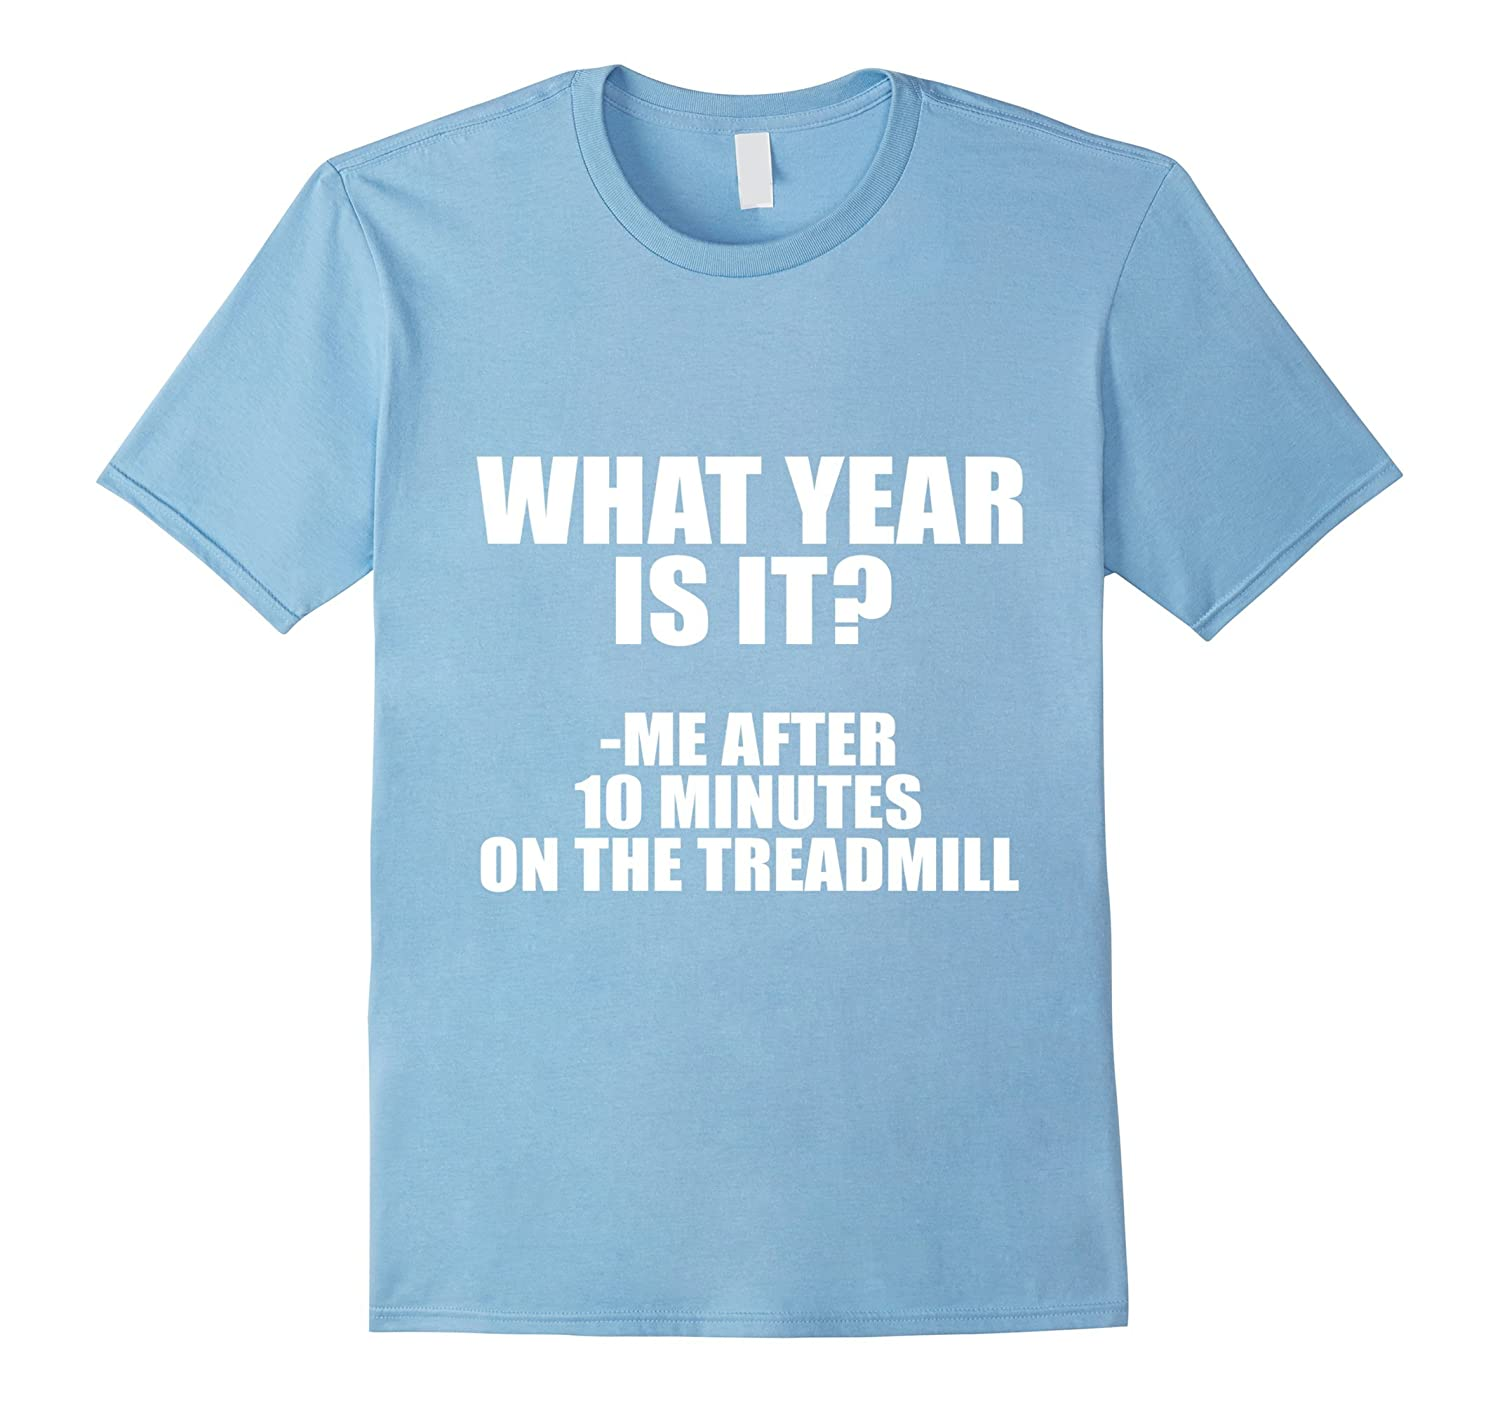 What Year Is It? Funny Gym Shirts for Women and Men-PL